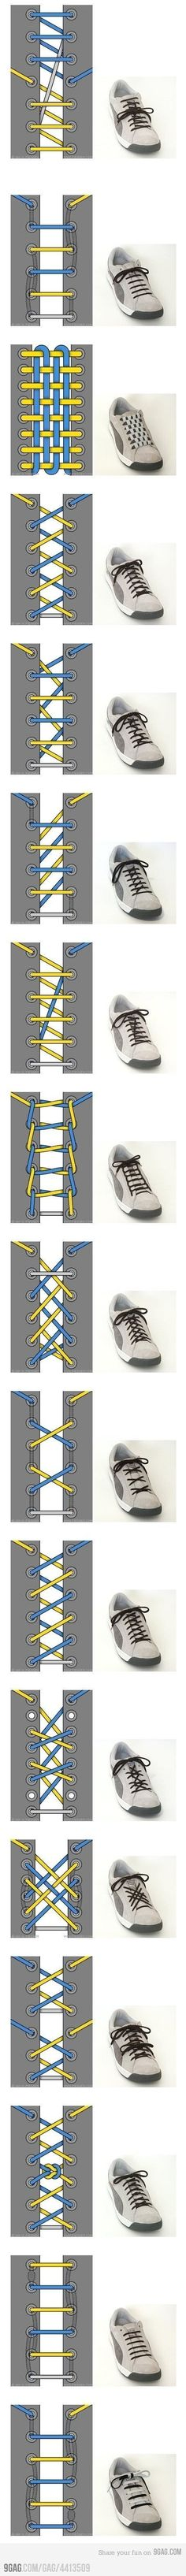 I am never tying my shoelaces boring again..